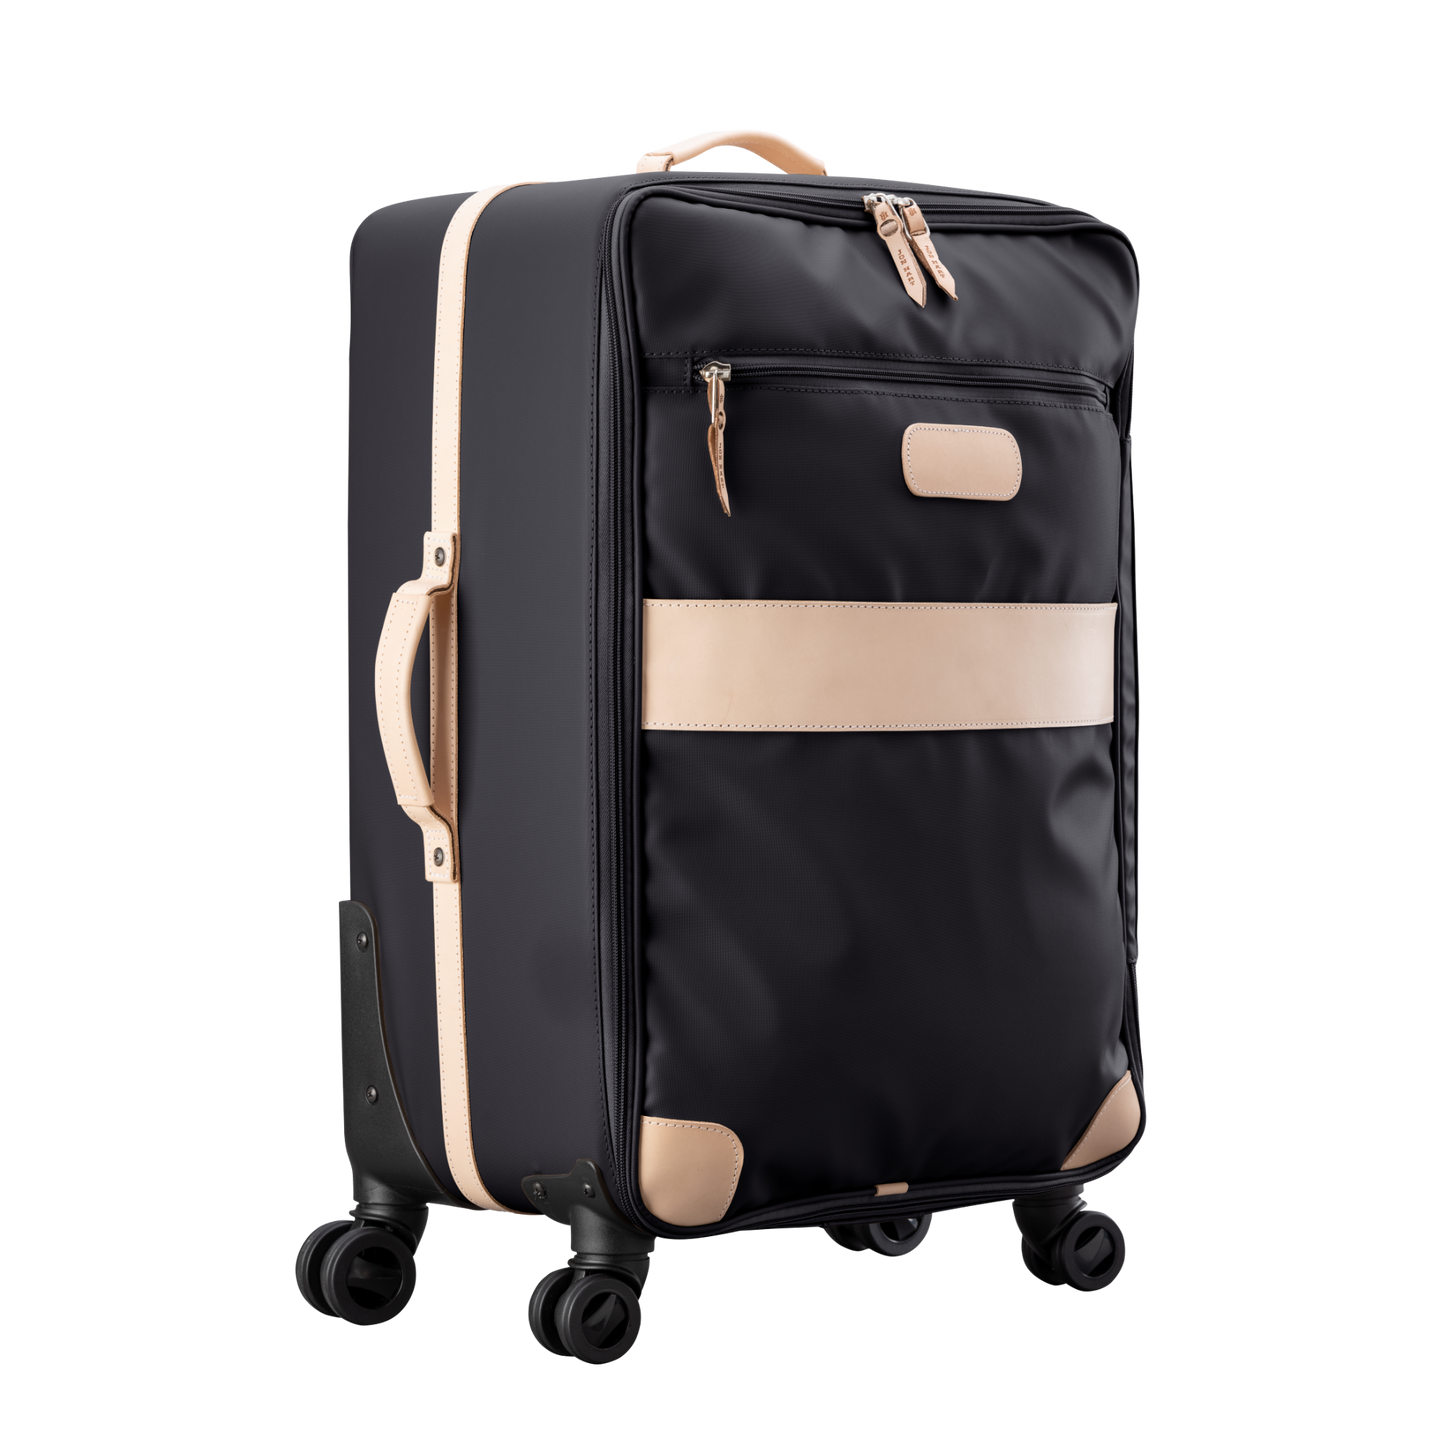 Large 360 wheeled luggage diagonal view in Color 'Black Coated Canvas'